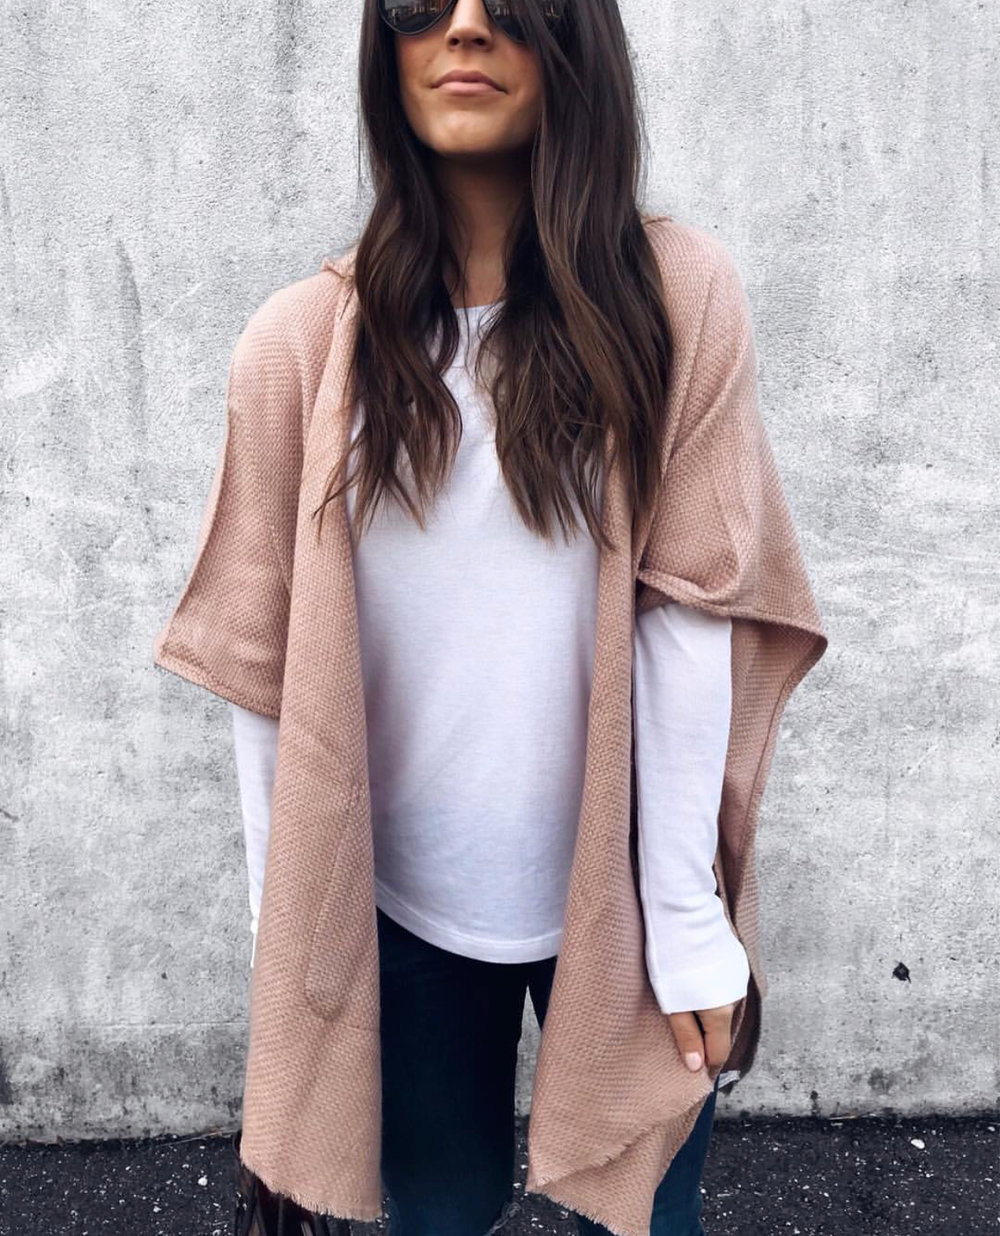 fall fashion, fall outfit idea, fall outfit inspiration, cozy blush poncho, outfit of the day